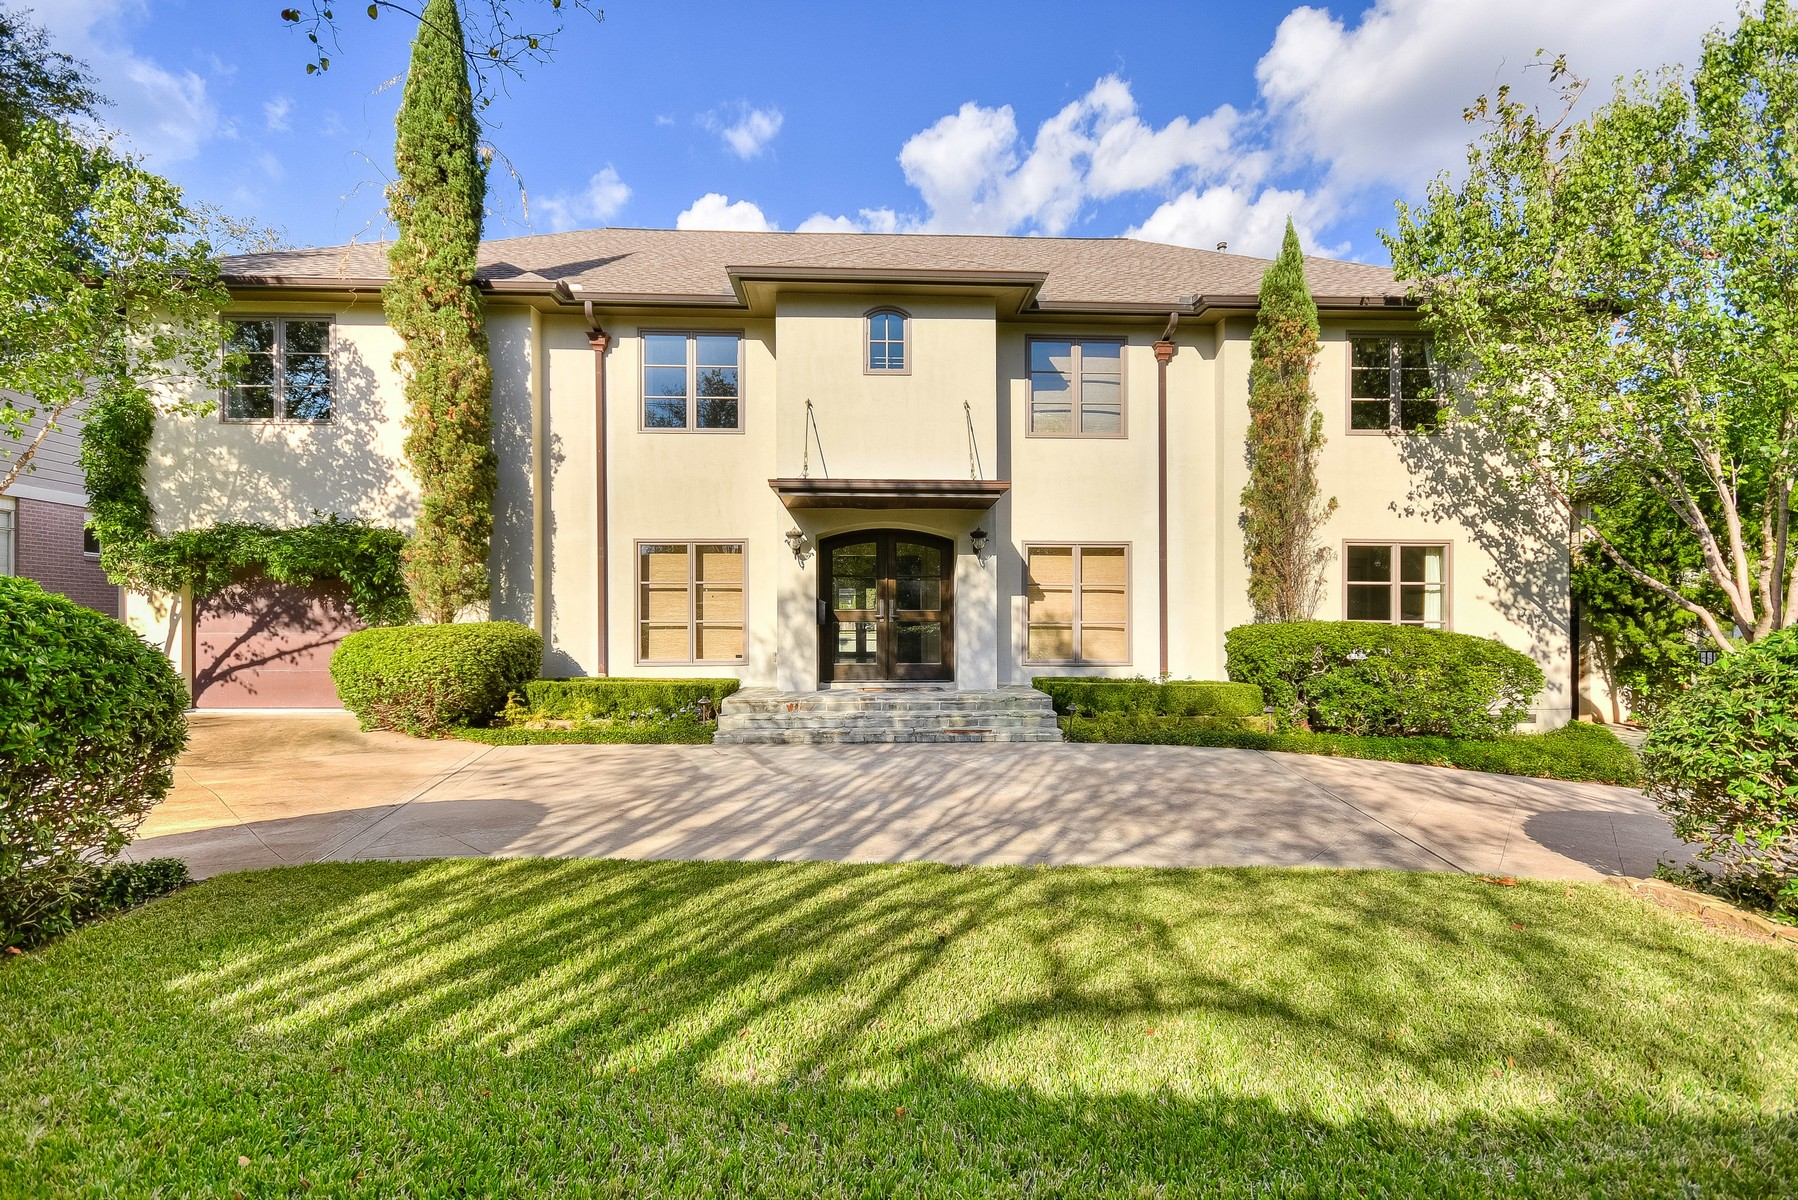 Single Family Home for Sale at Gorgeous Tarrytown 5 Bedroom 2404 Bowman Ave Austin, Texas, 78703 United States